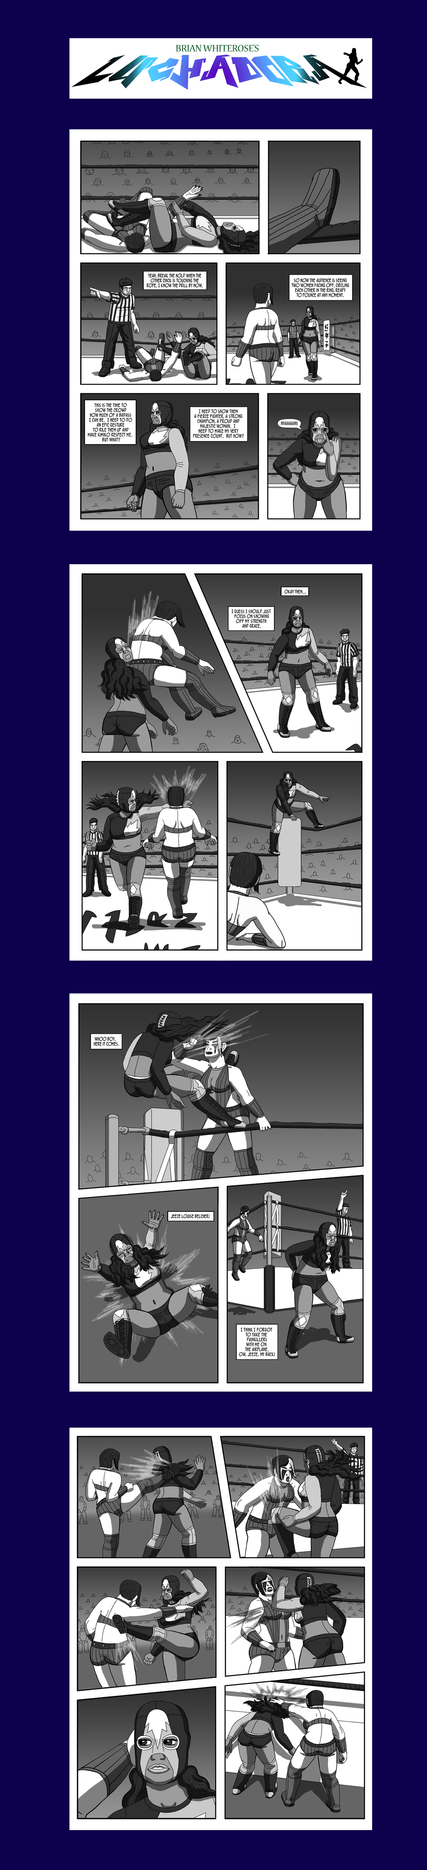 Luchadora, Fifth Scenario, Pages 5 to 8 by White-Rose-Brian